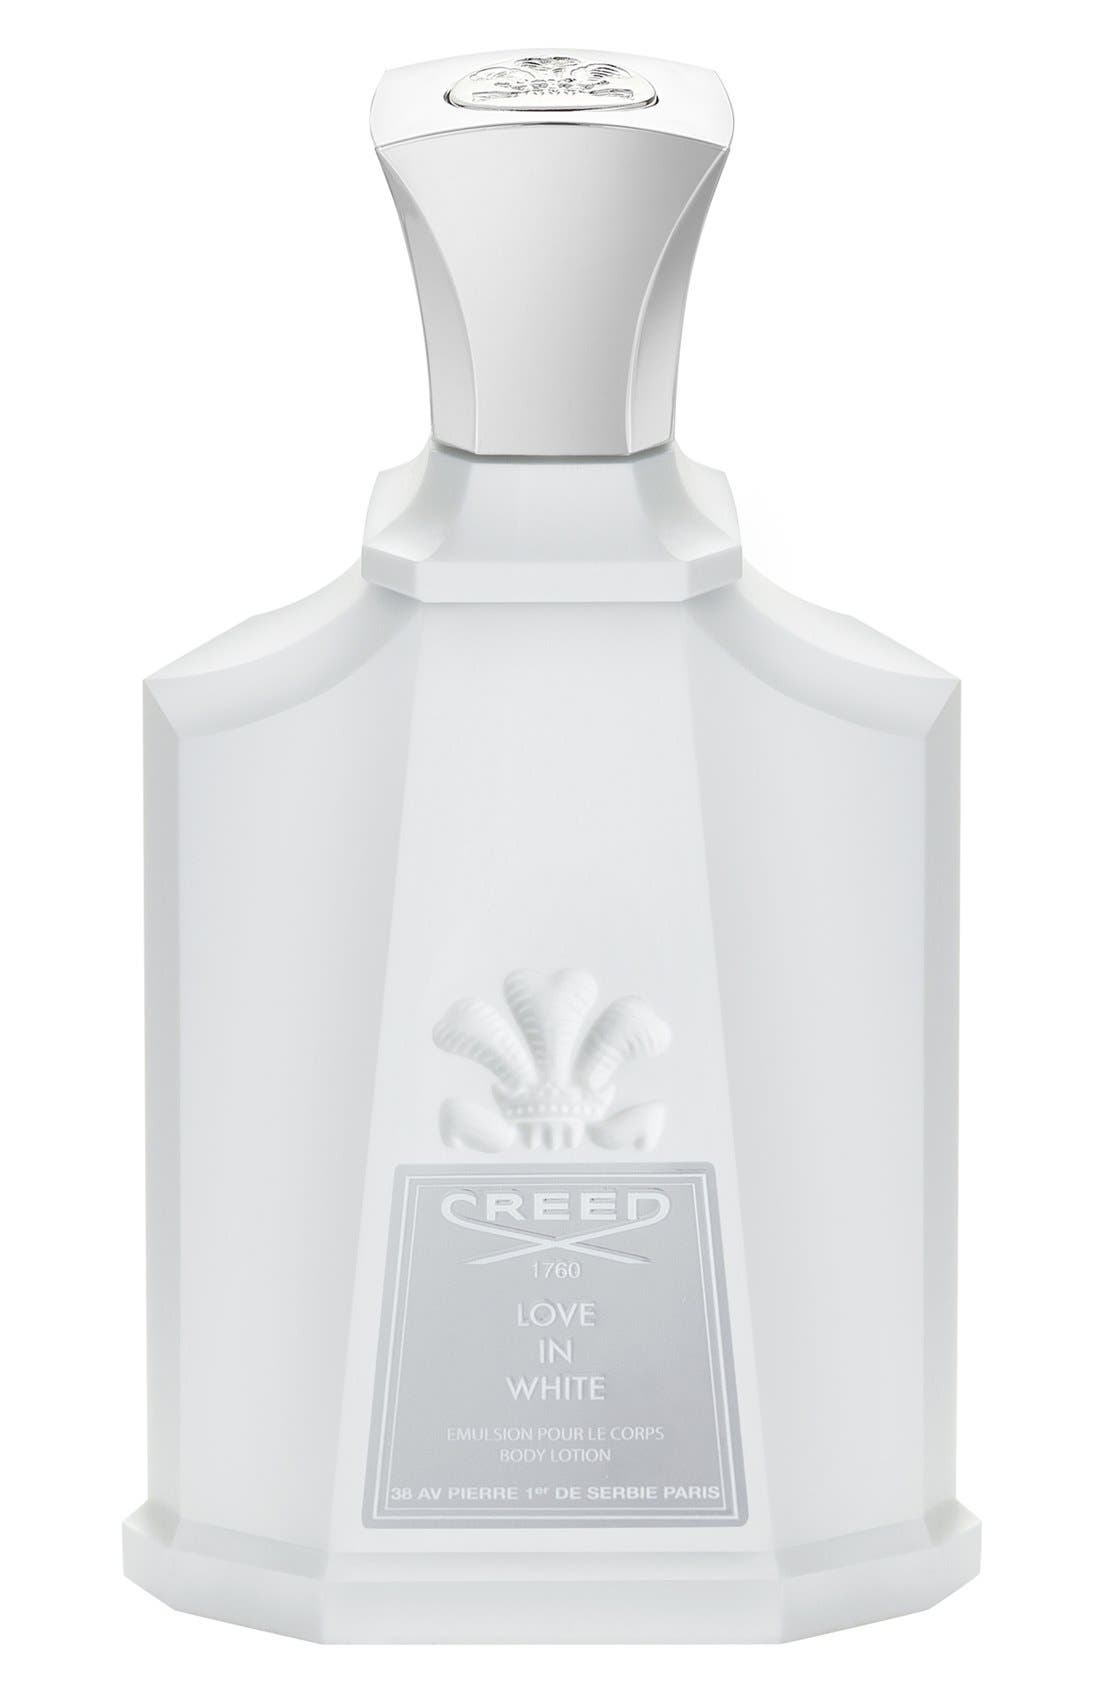 Creed 'Love in White' Body Lotion